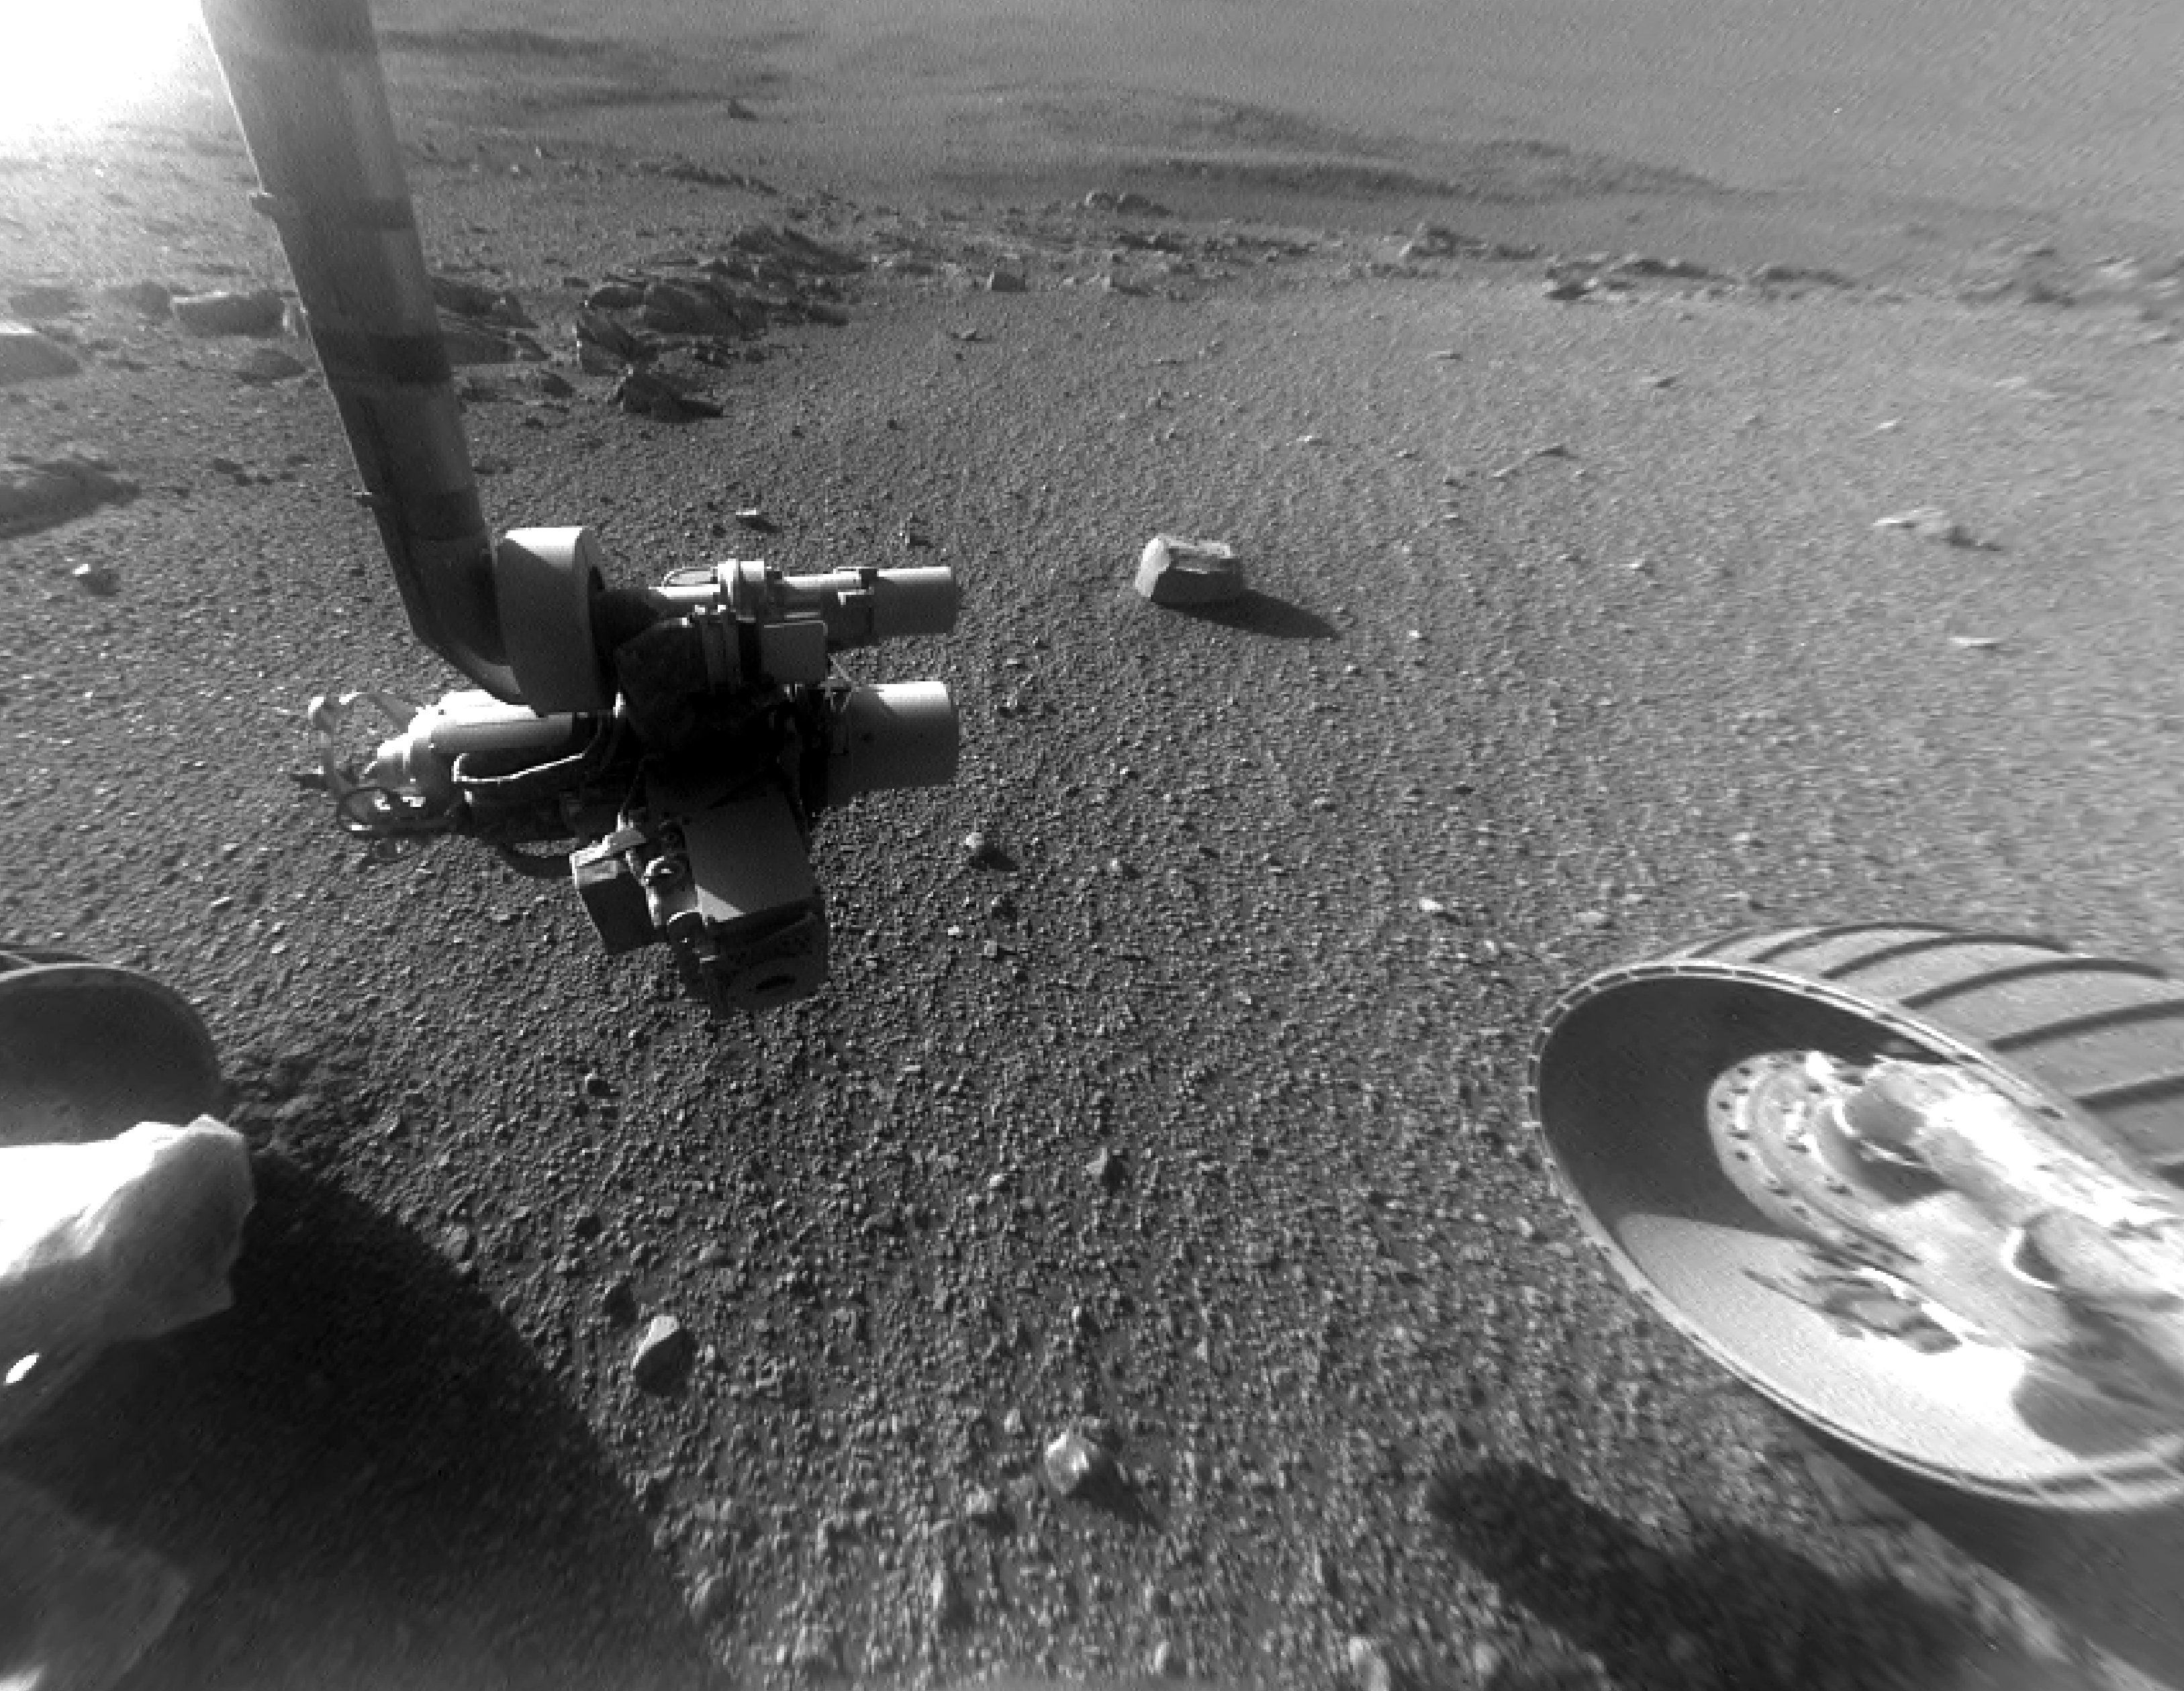 rover wheel and robot arm over rocky ground